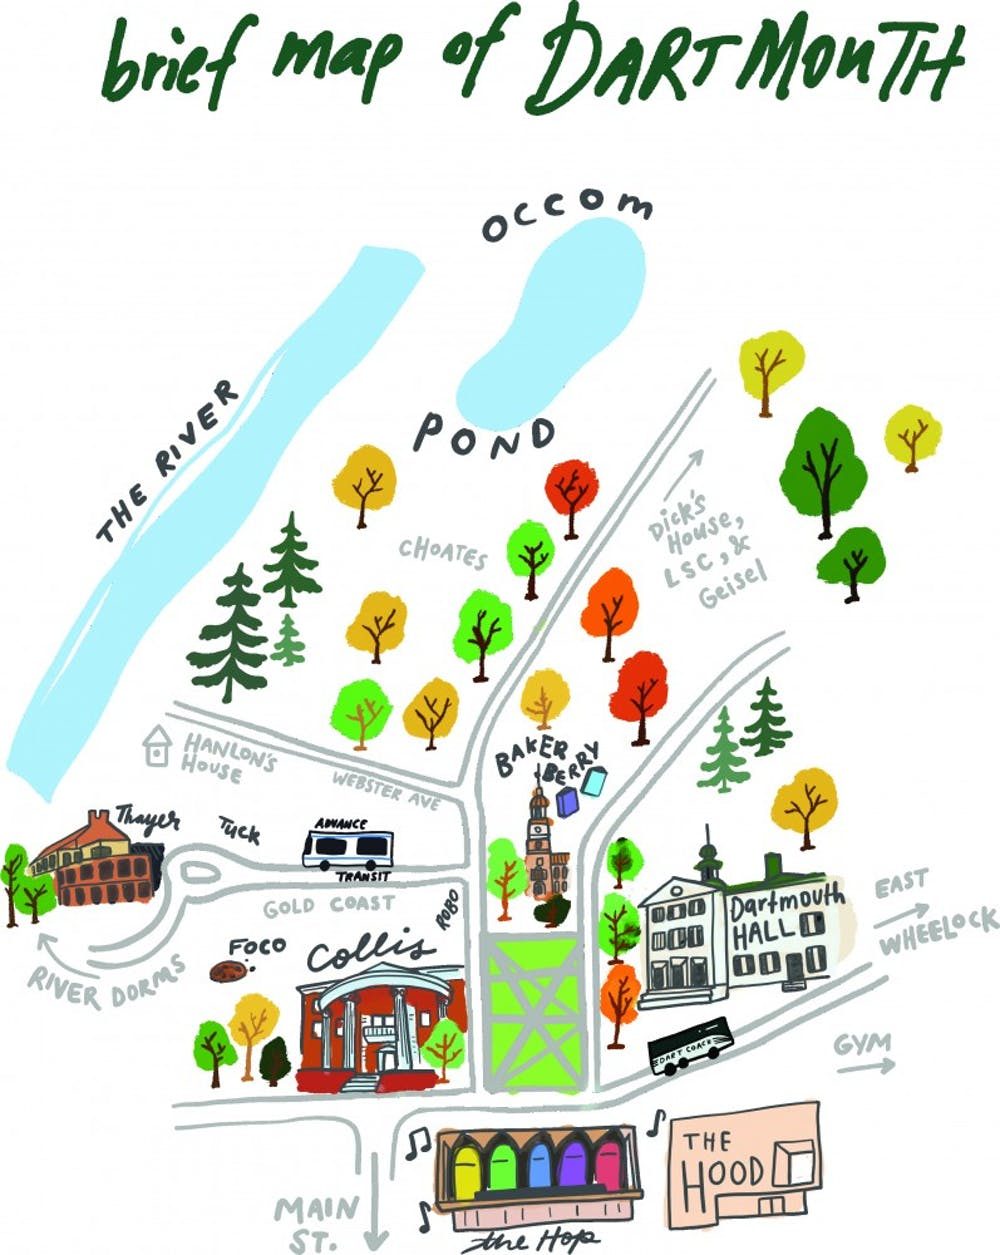 Mapping Dartmouth: Your go-to Campus Guide | The Dartmouth on dartmouth-hitchcock map, dartmouth lacrosse, dartmouth university library, dartmouth attractions, dartmouth nh, dartmouth athletics, dartmouth college, unh parking lot map, dartmouth basic, dartmouth winter carnival, dartmouth commencement, durham university college locations map, dartmouth medical school,